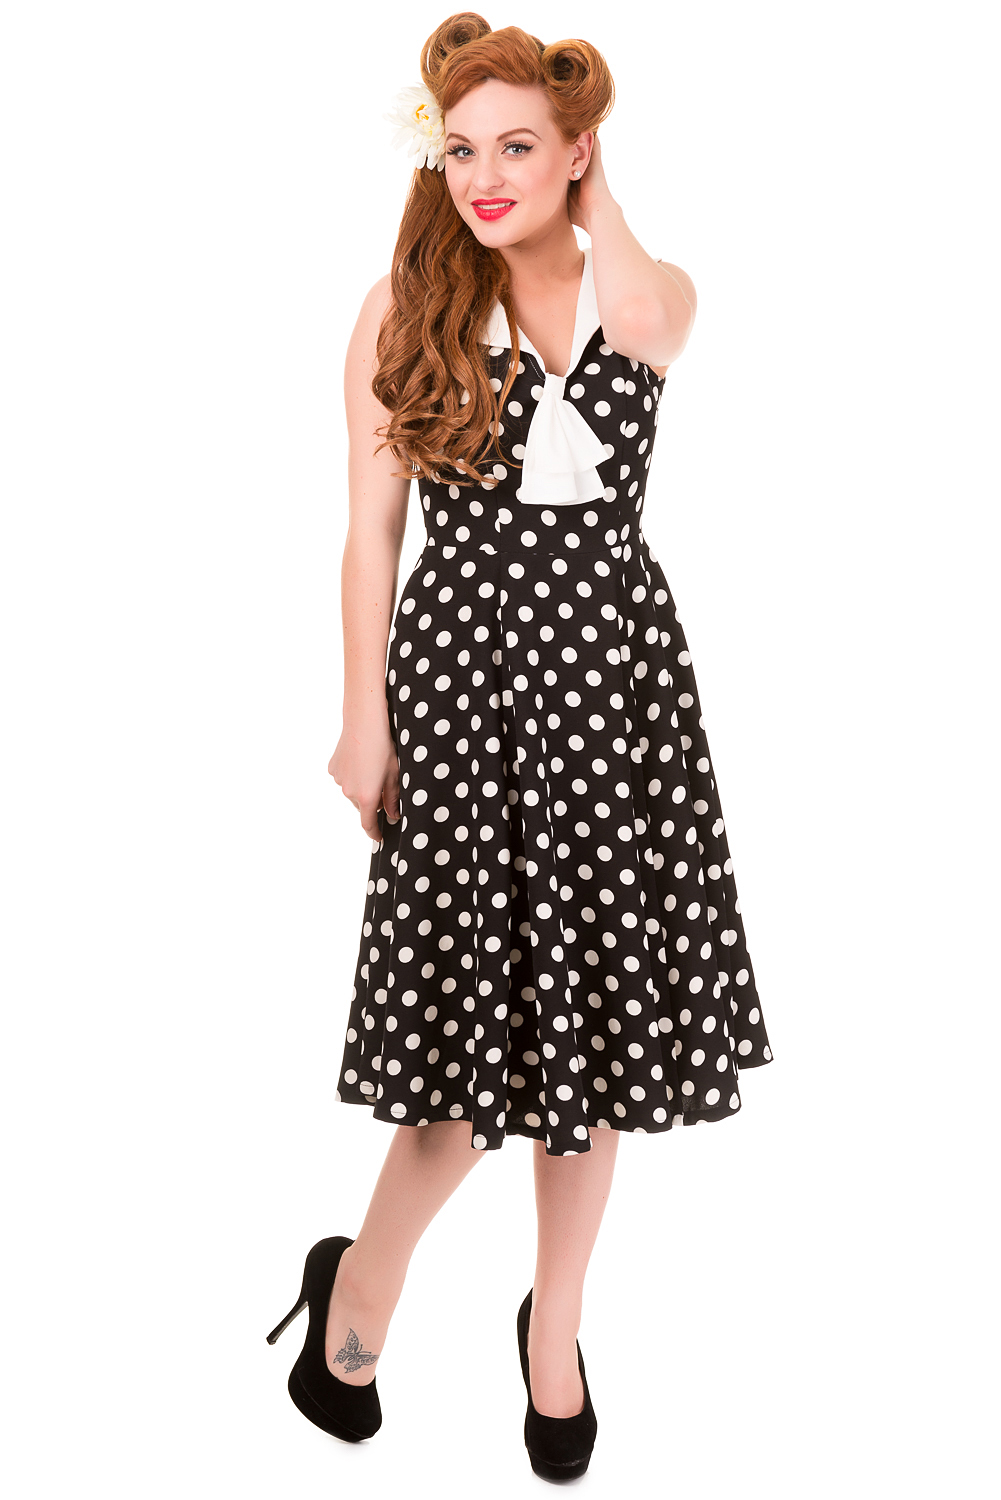 Banned Vintage Black Polka Dot Dress